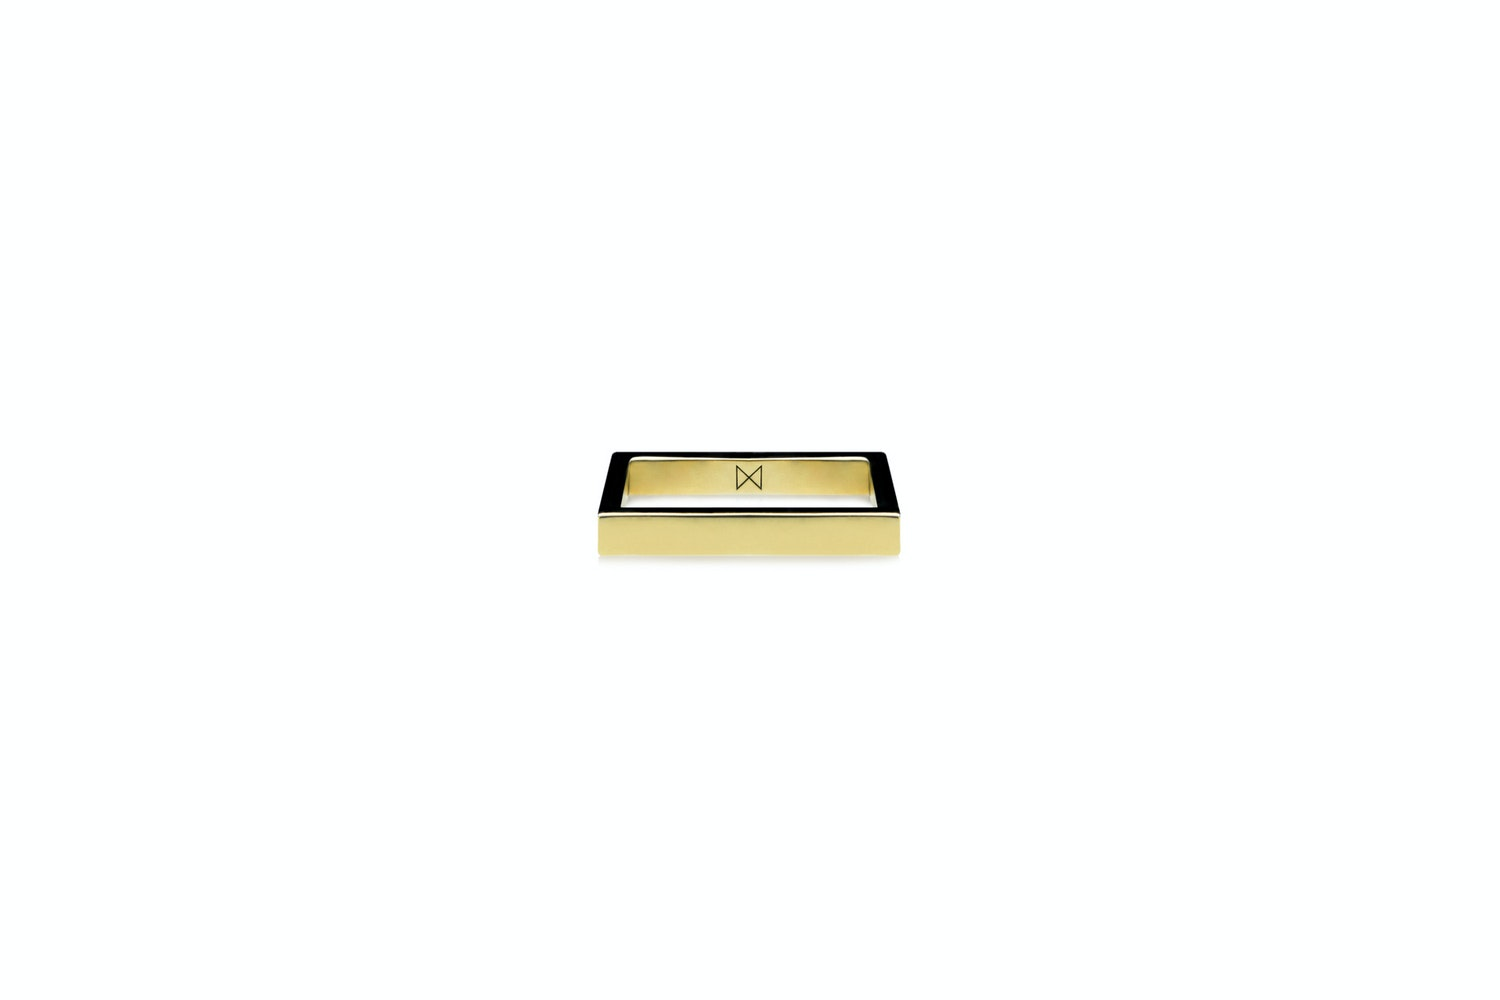 Square Ring (Medium) - Polished Brass by Minimalux